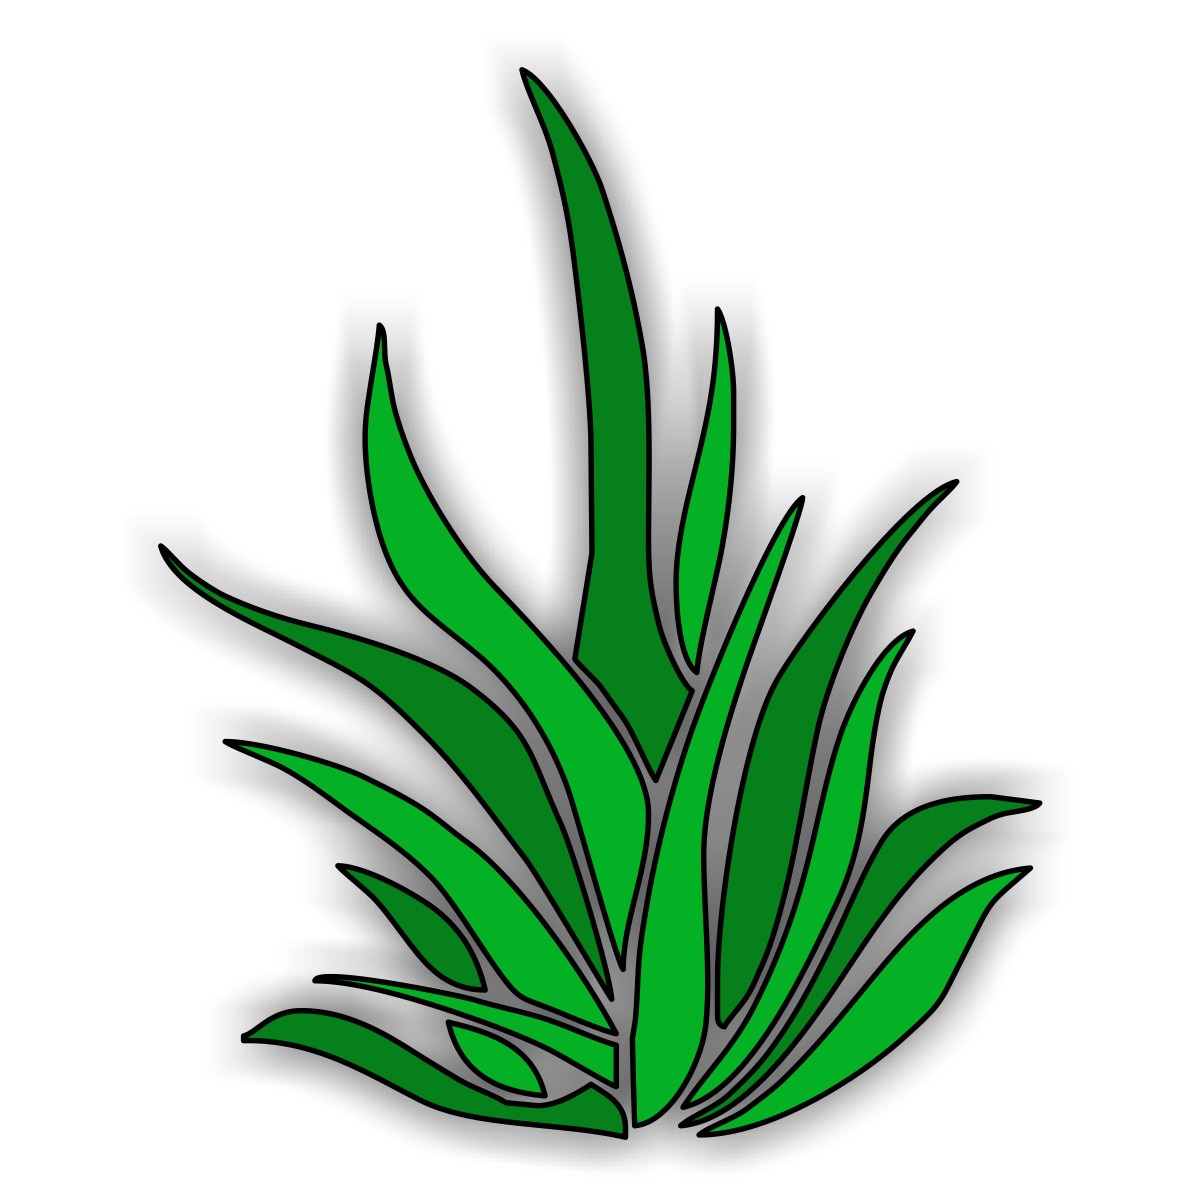 hight resolution of 1200x1200 collection of ocean plants clipart high quality free